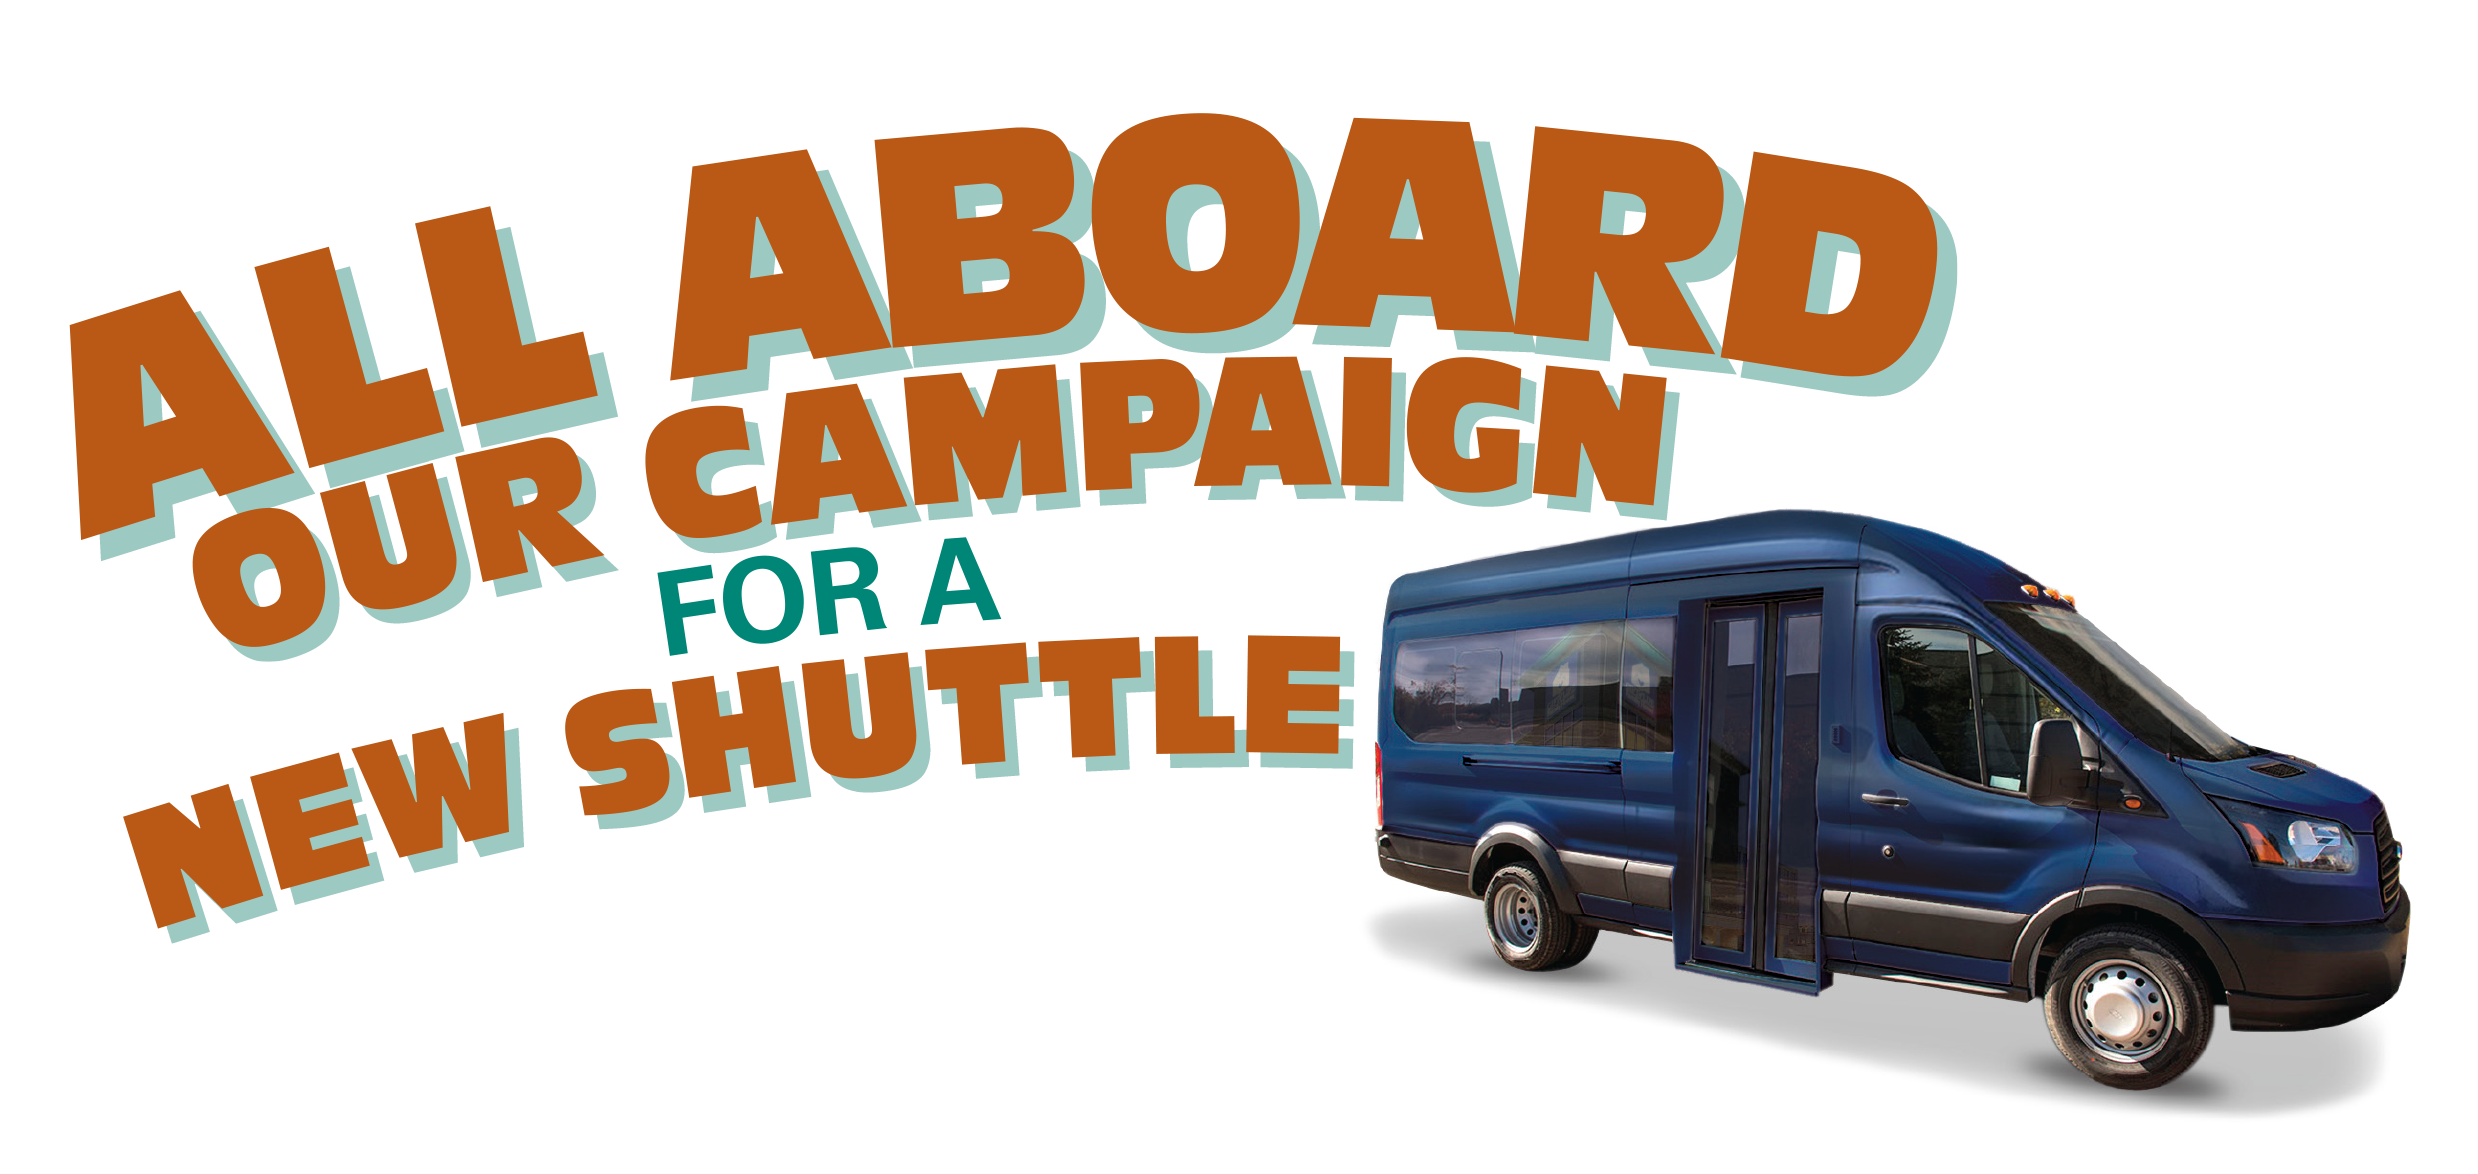 All Aboard Our Campaign for a New Shuttle - Gift of Life Family House